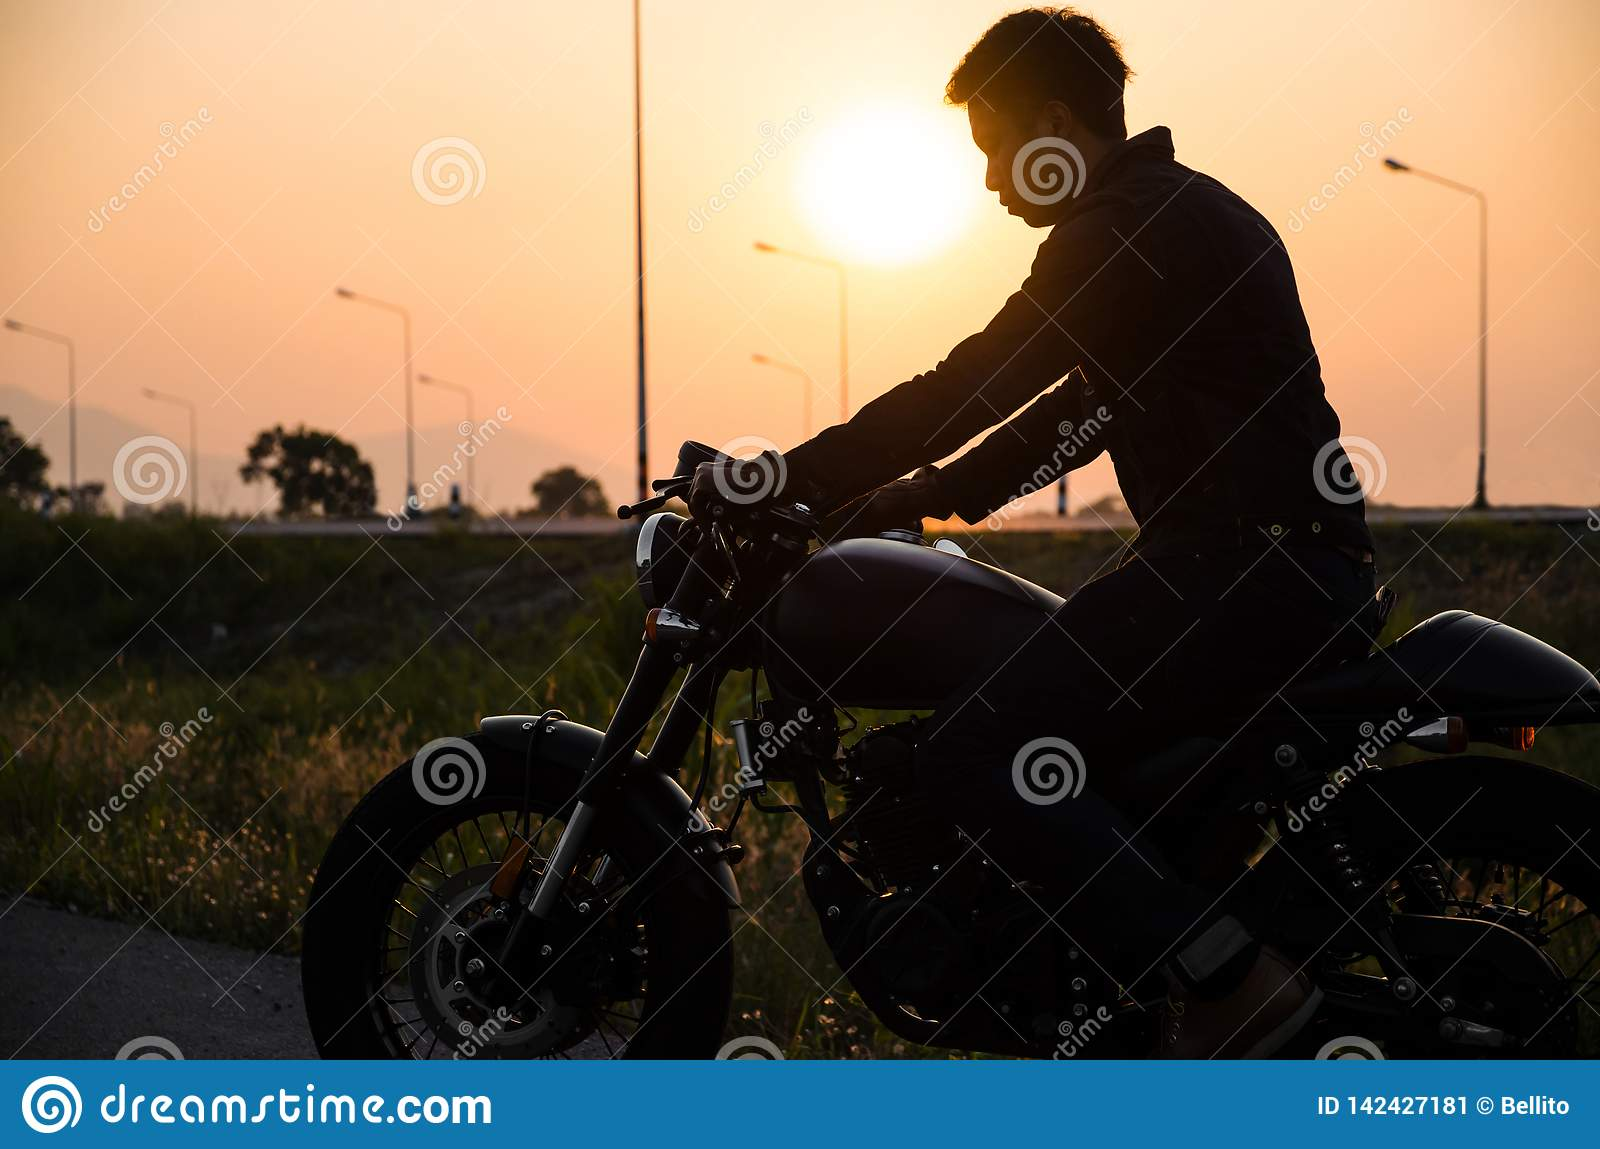 Silhouette of man riding vintage motorcycle cafe racer style